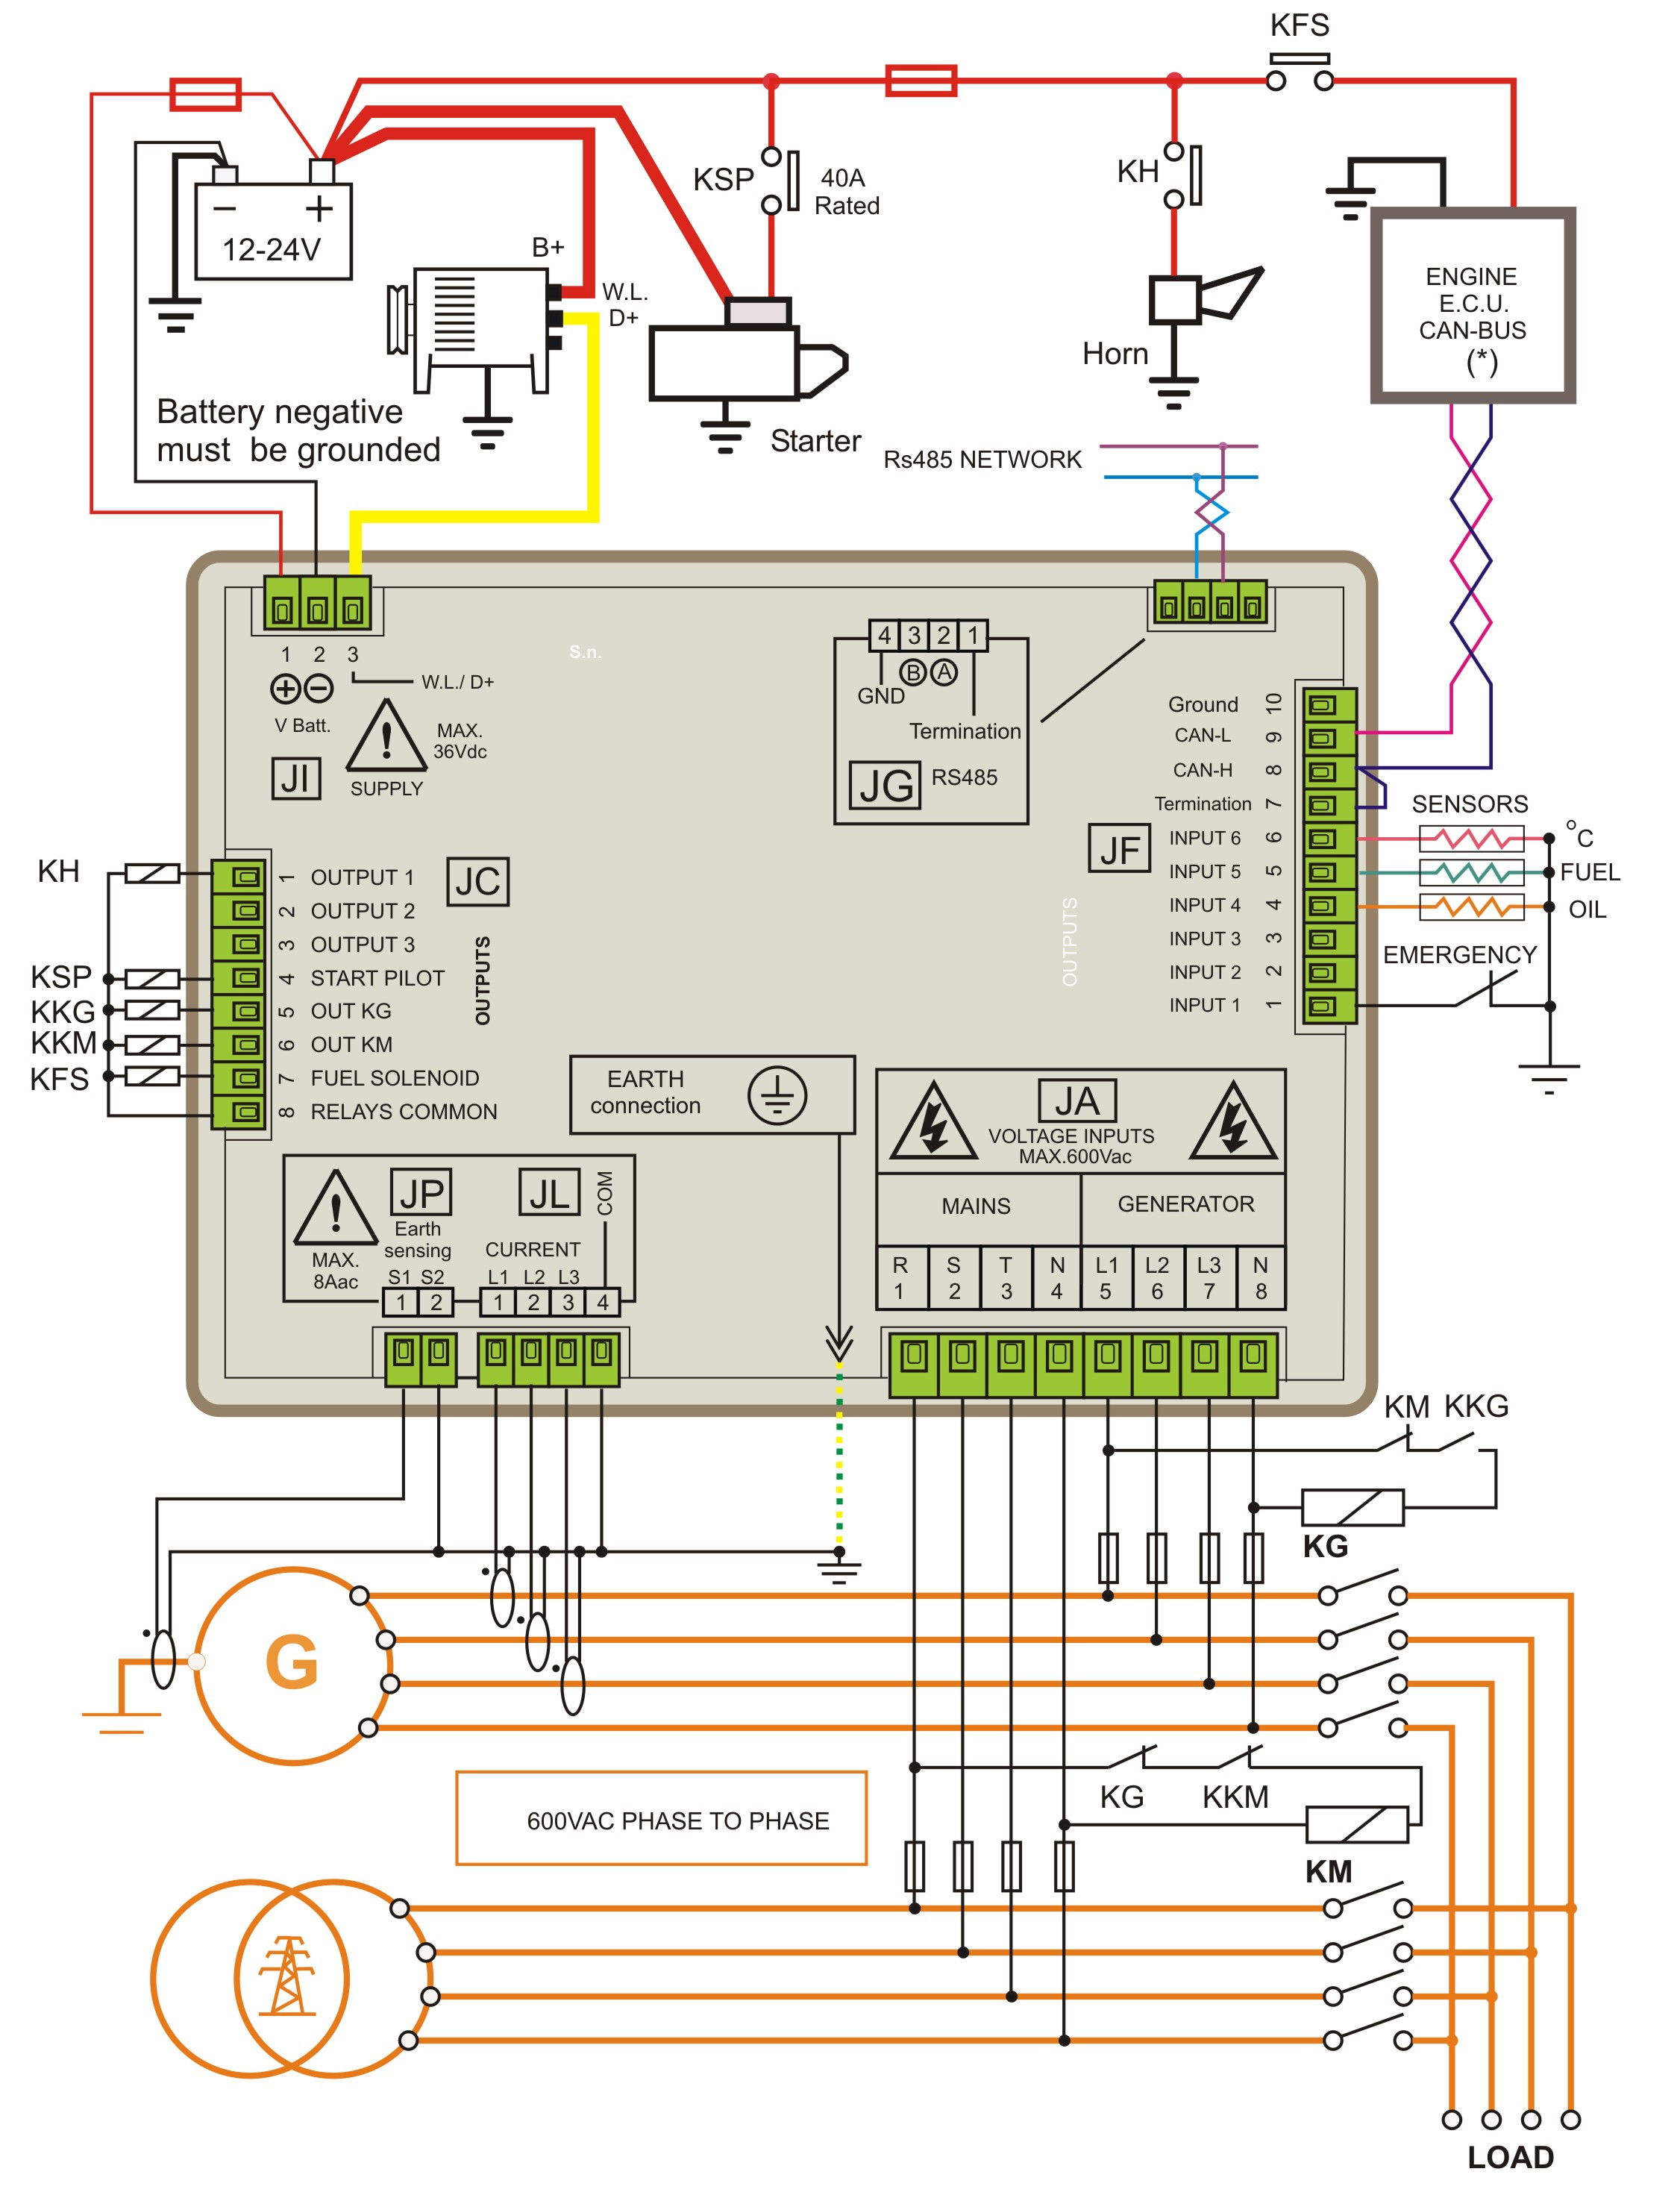 ceiling fan switch wiring schematic wirdig wiring diagram 1979 ford f 150 marine voltage regulator wiring diagram